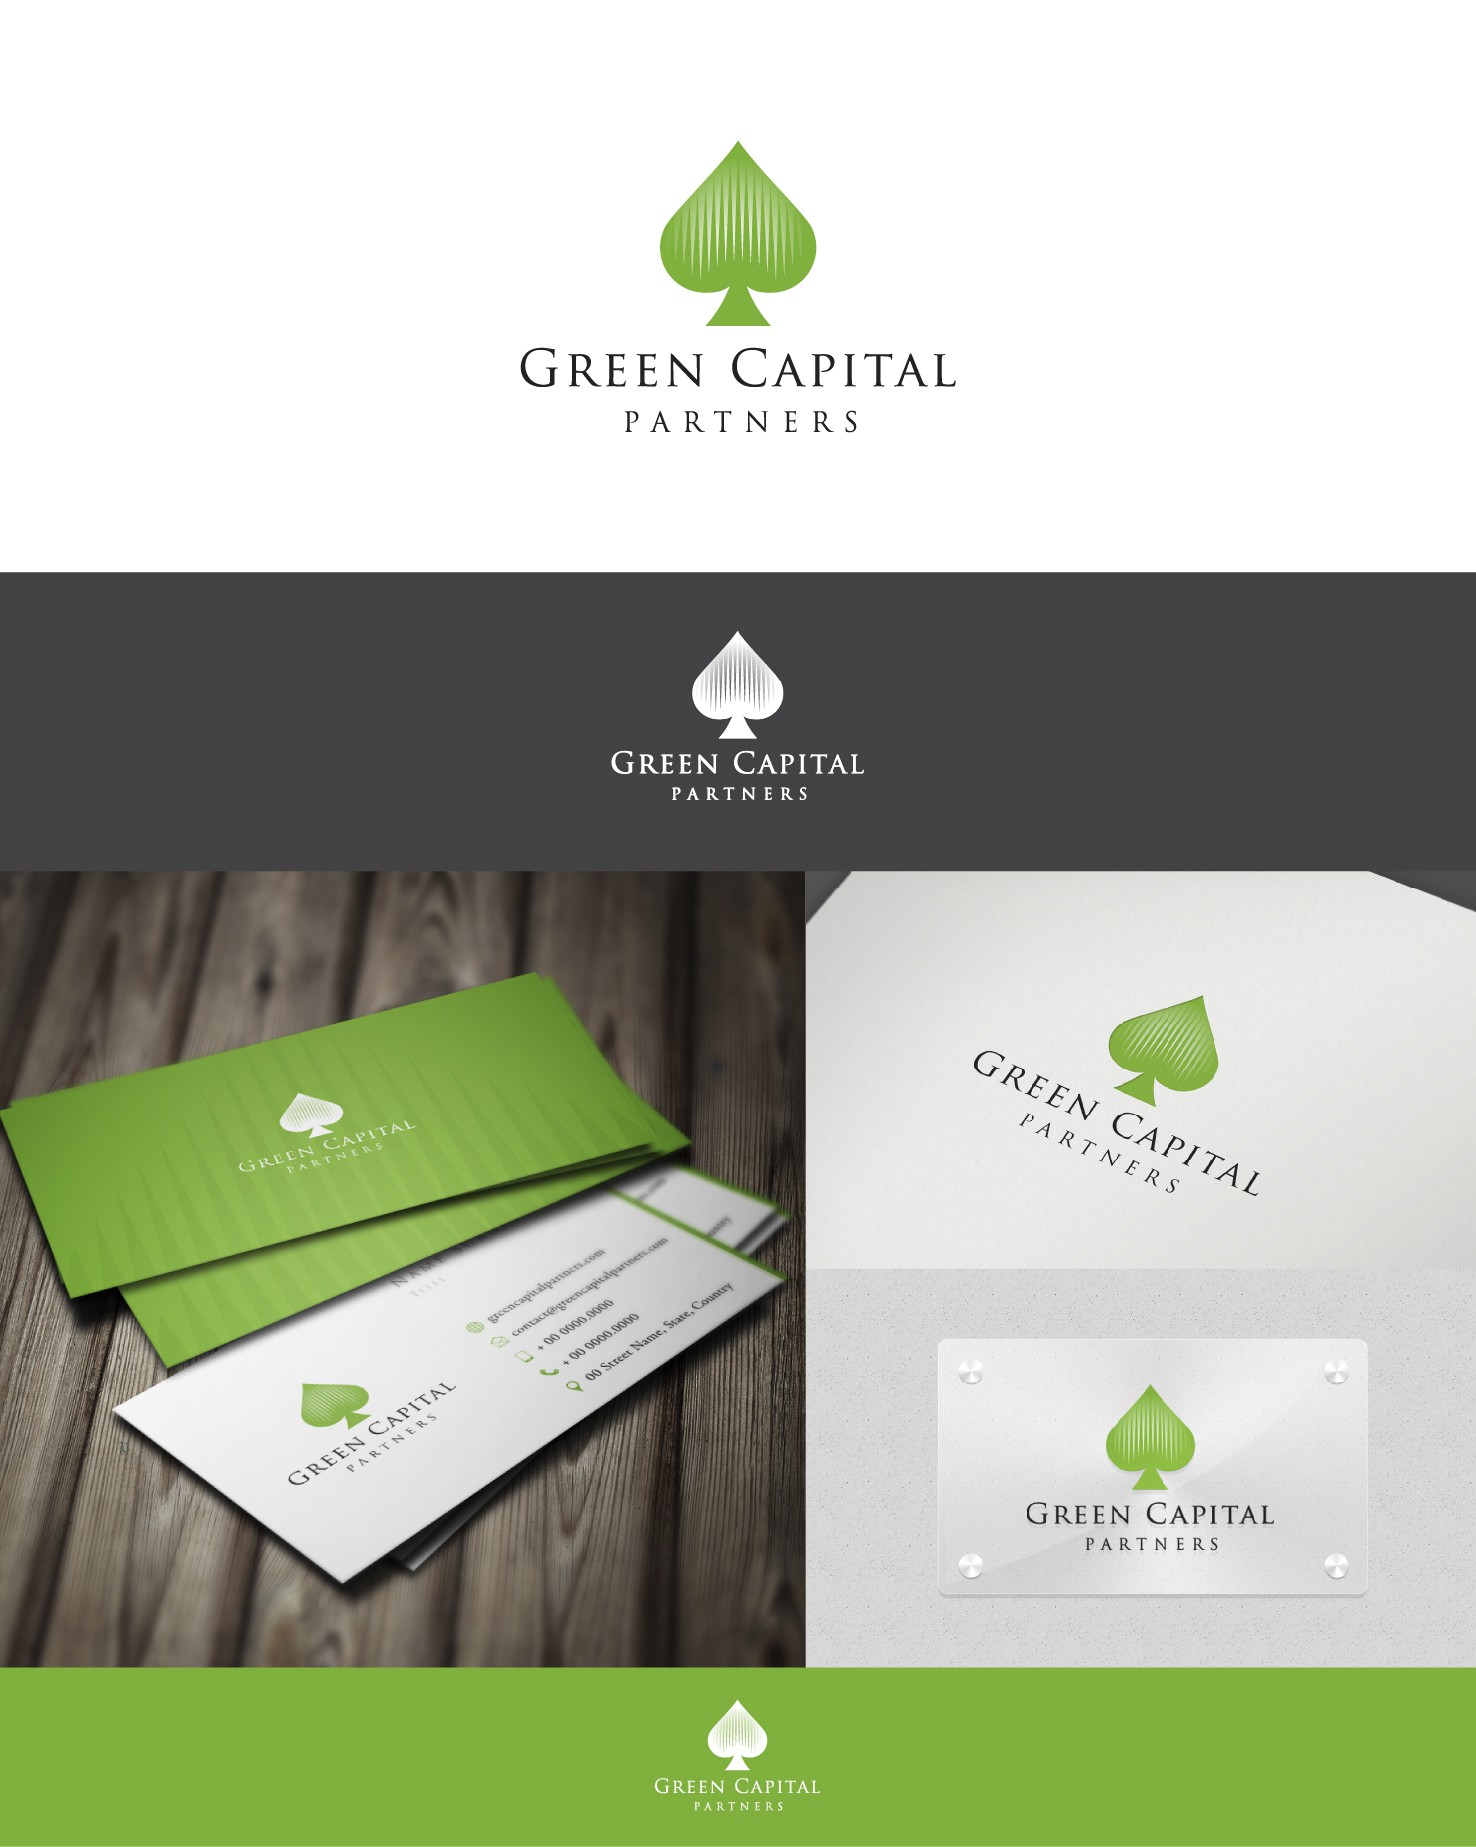 New logo and business card wanted for Green Capital Partners